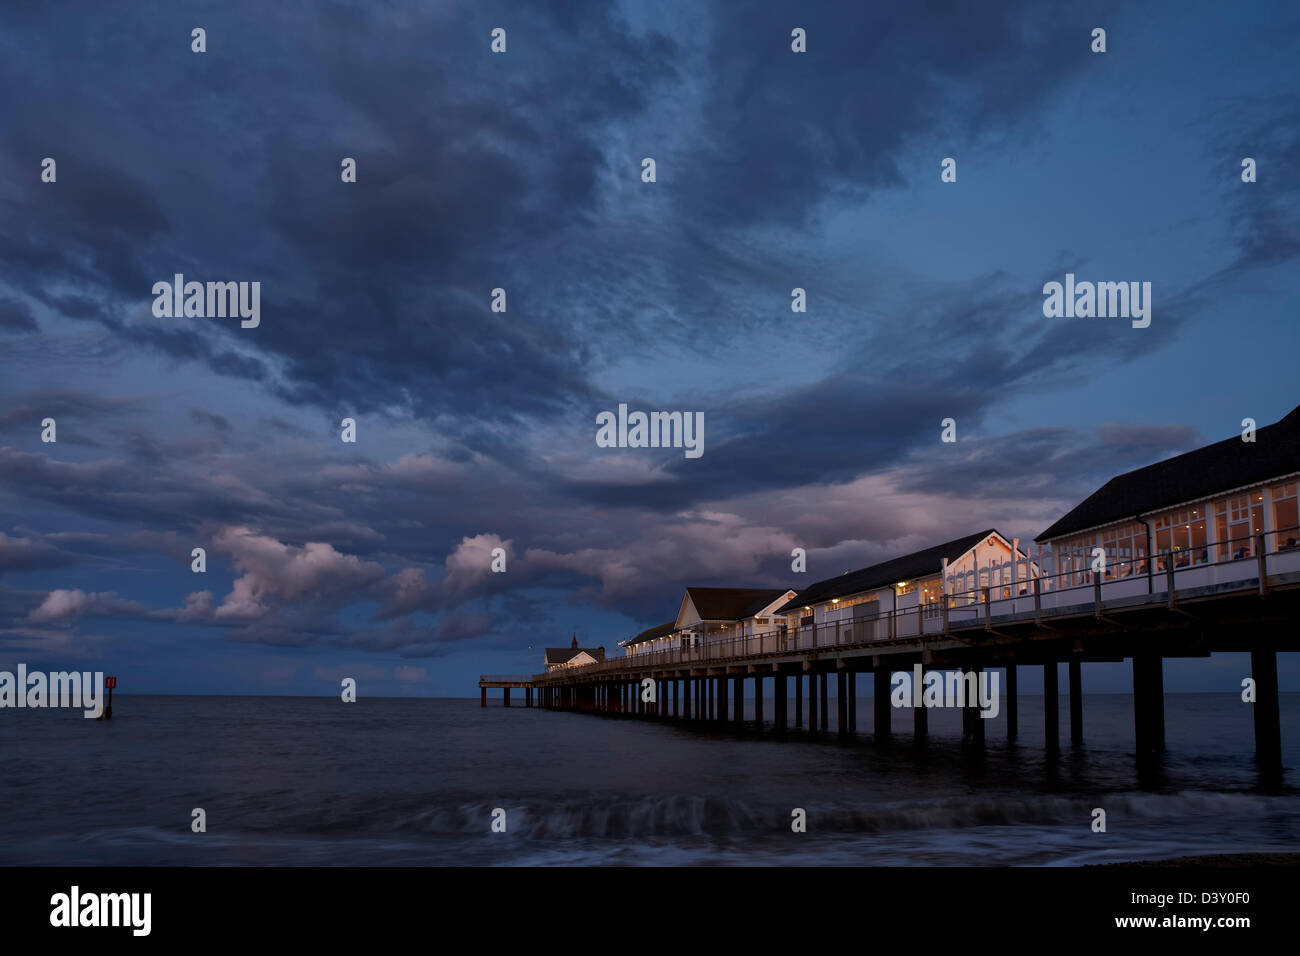 Southwold Pier at night - Stock Image